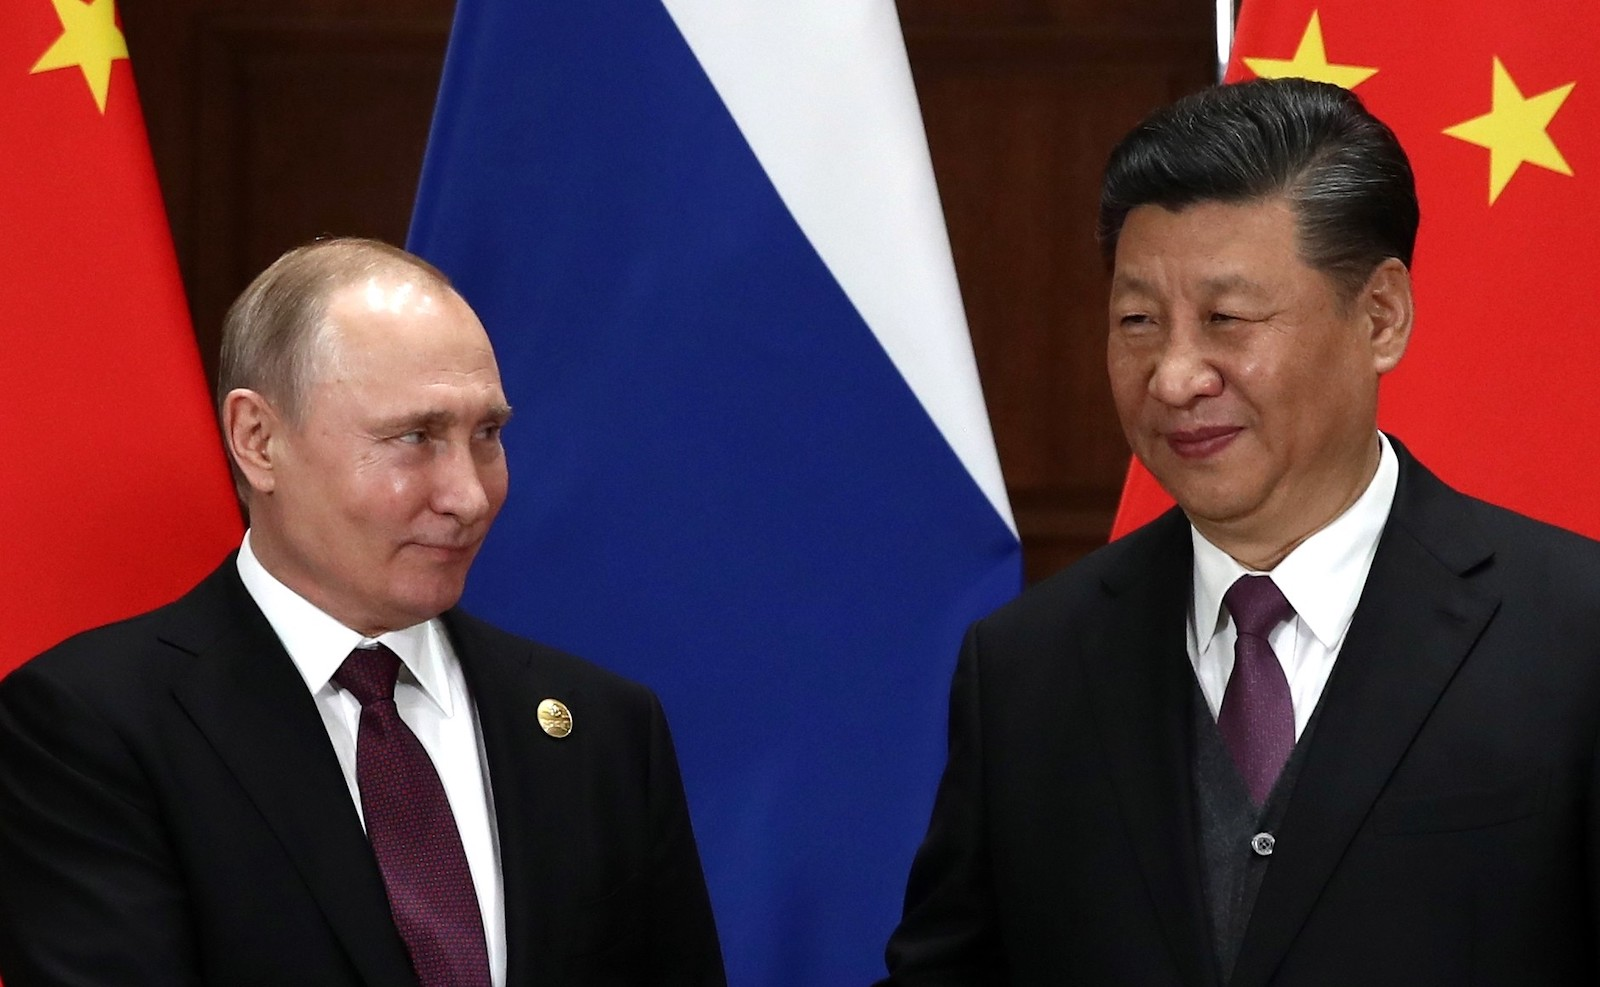 Close friends: Russia's Vladimir Putin and China's Xi Jinping (Photo: TASS via Kremlin.ru)